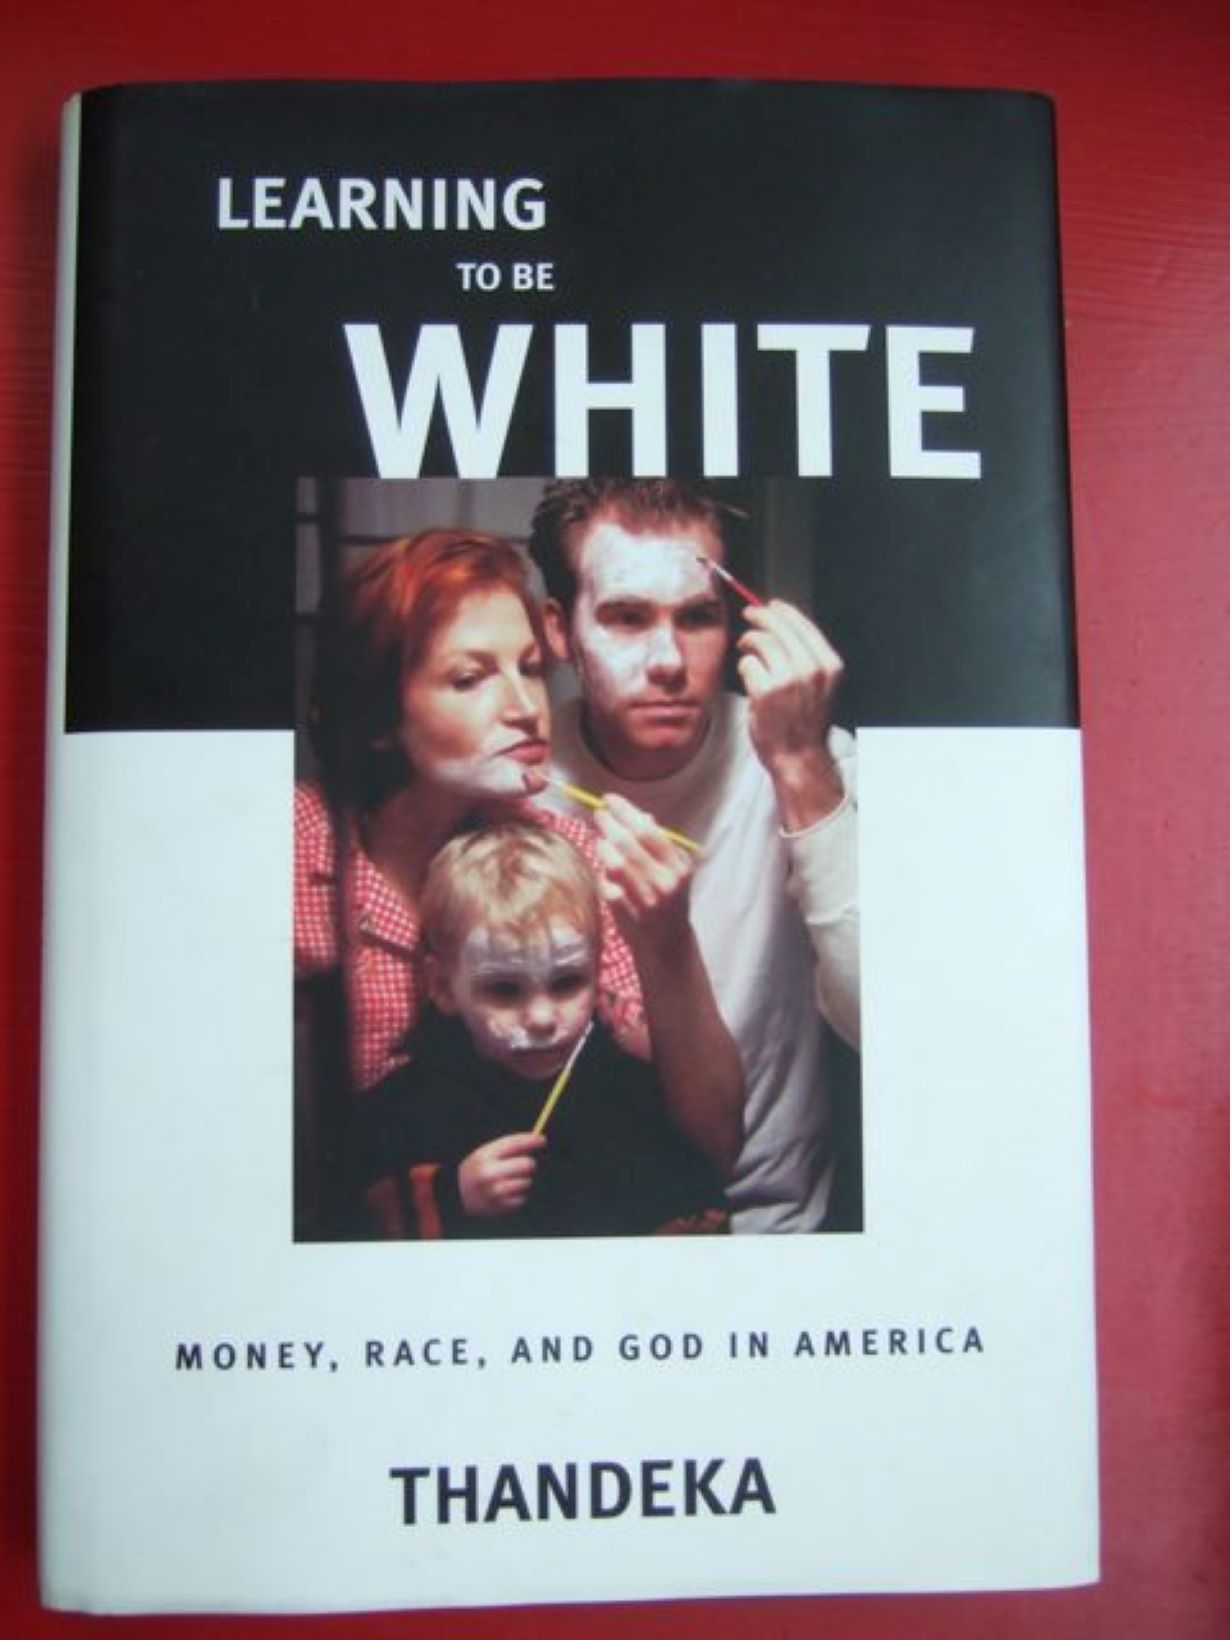 How Puritans and Calvinists Implanted Racism in White Deep Culture